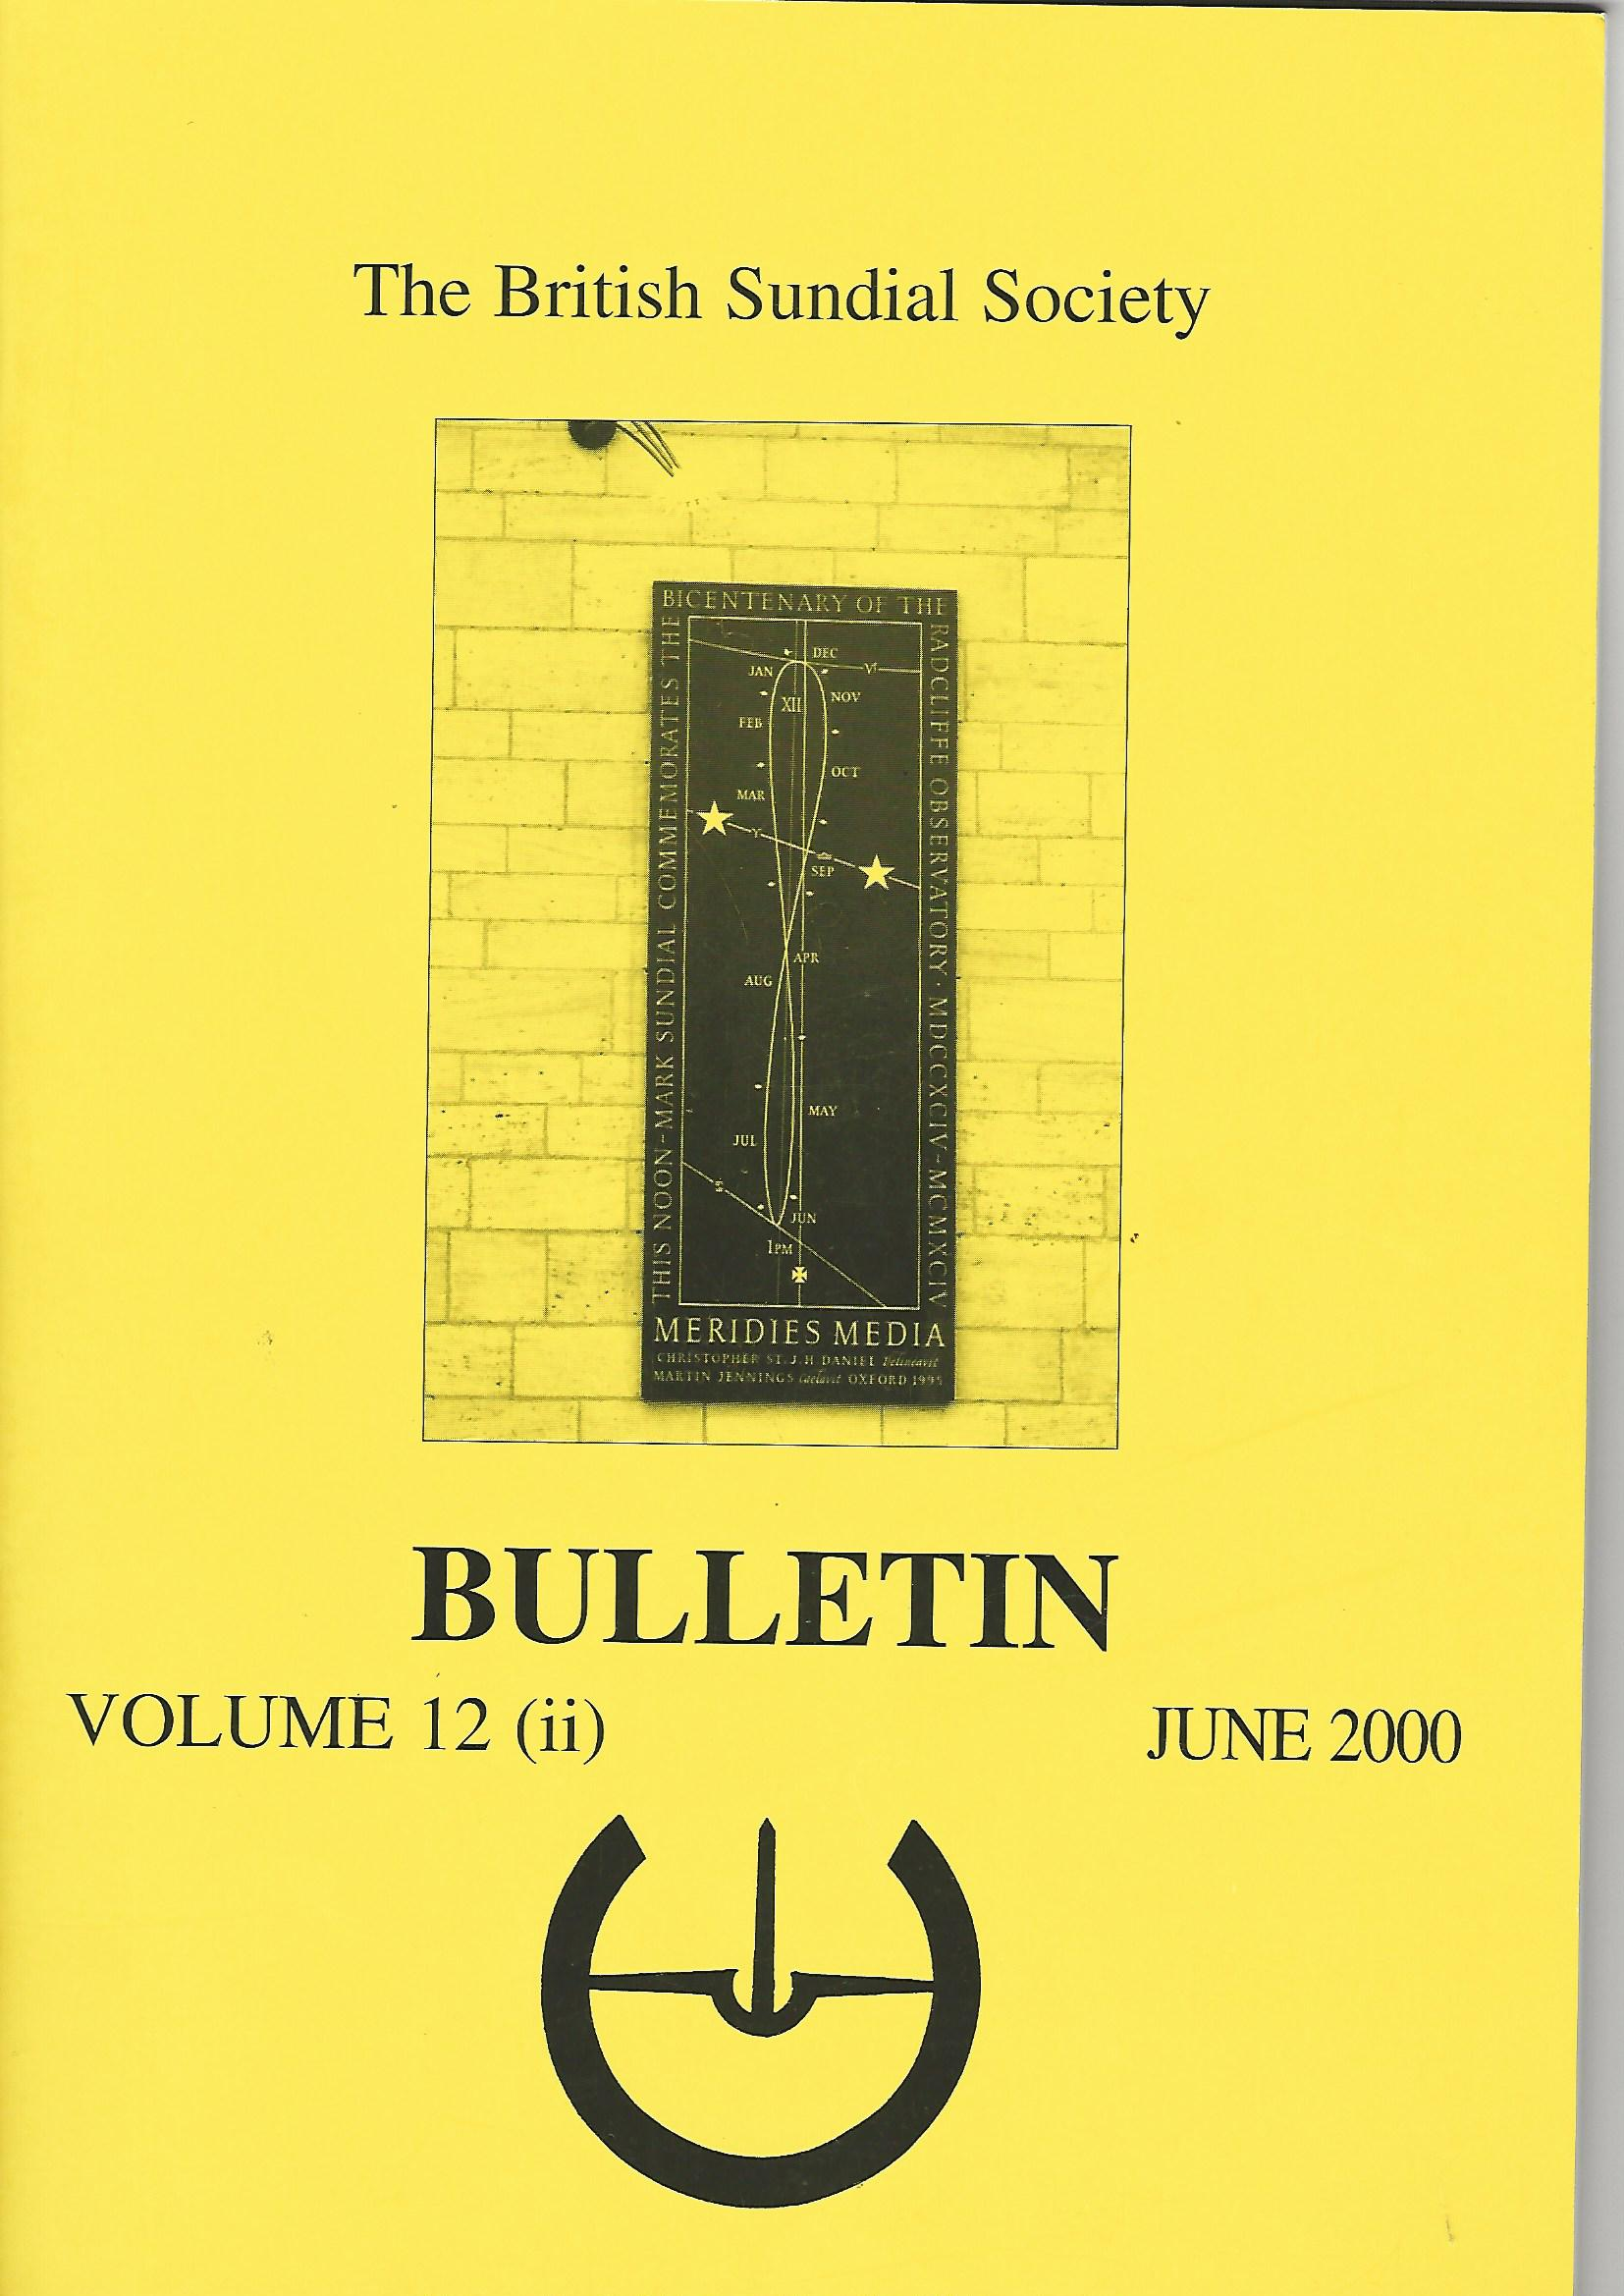 Image for The British Sundial Society Bulletin Volume 12 (ii)